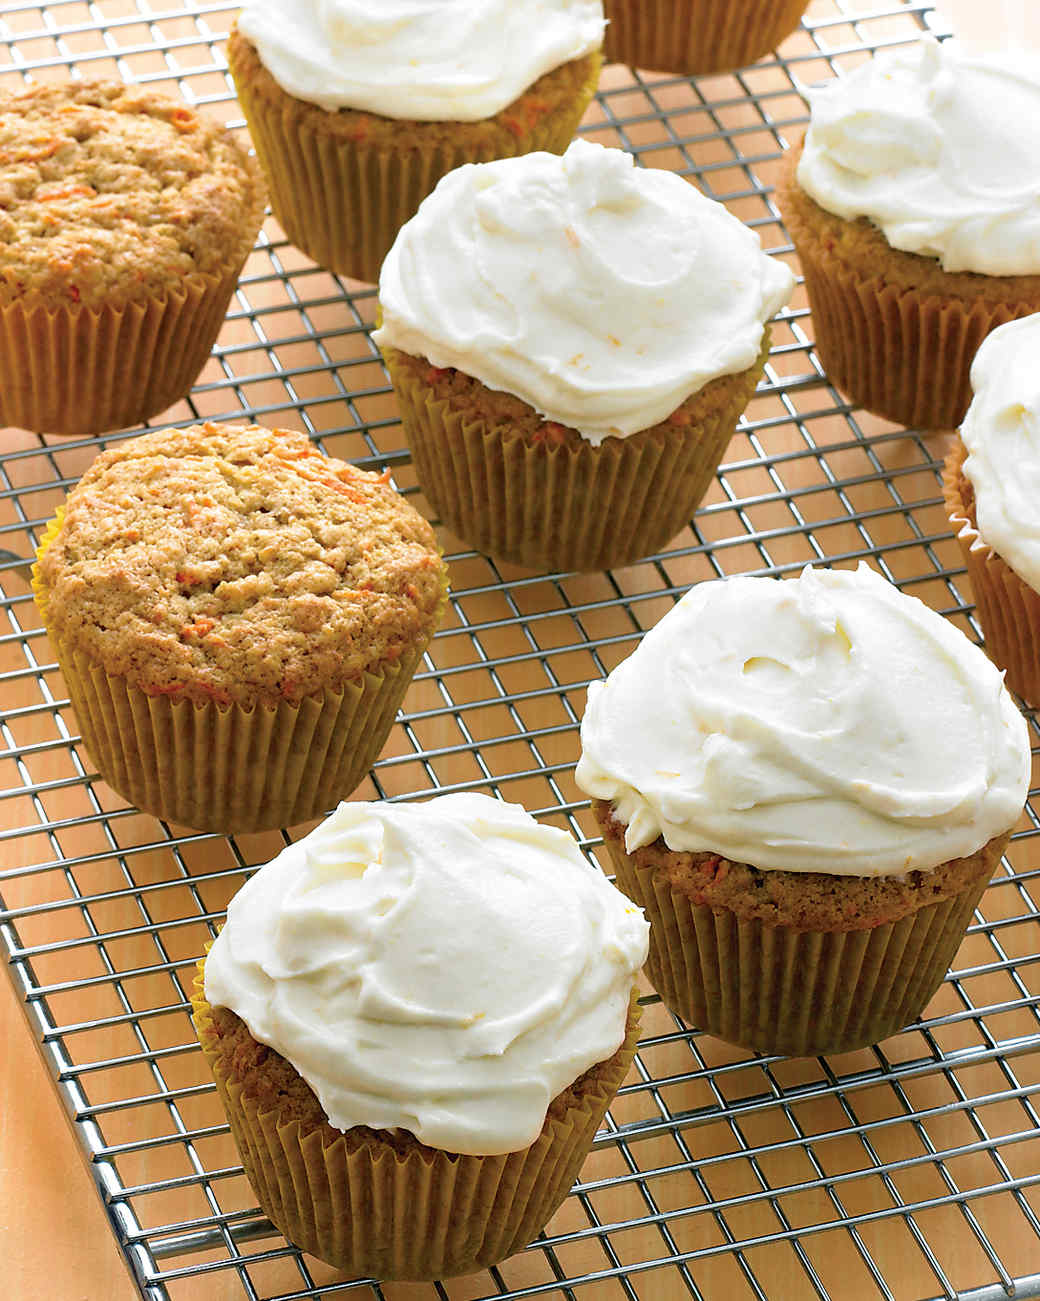 John's Carrot Cupcakes with Cream-Cheese Frosting